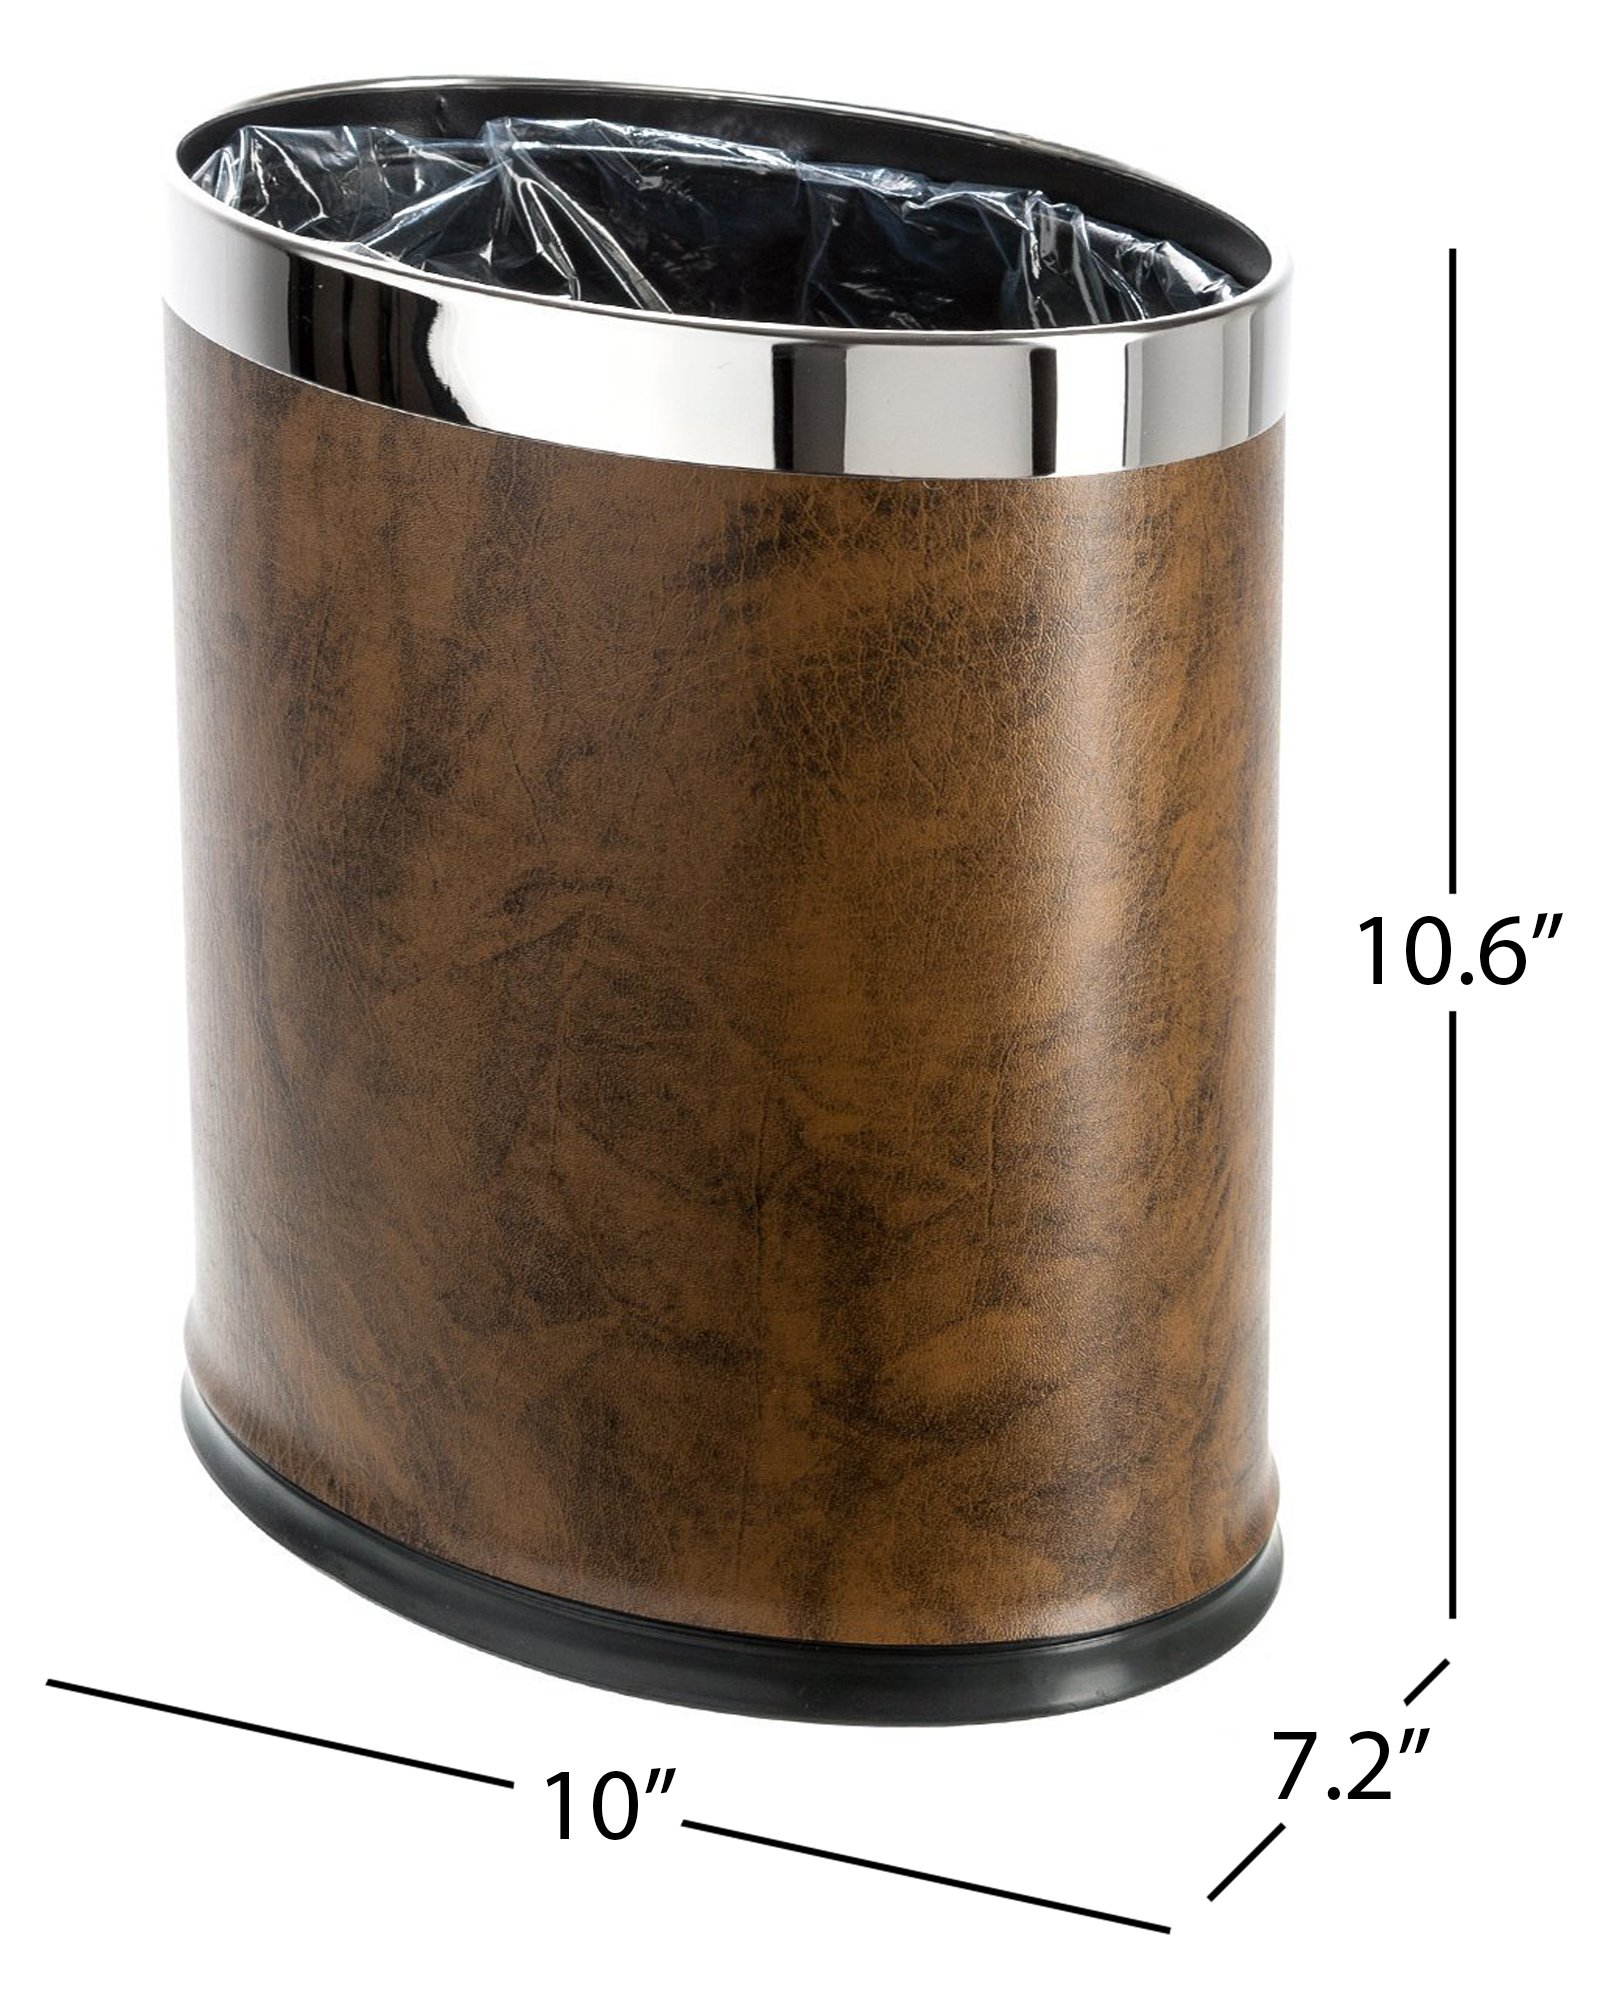 Brelso 'Invisi-Overlap' Open Top Leatherette Trash Can, Small Office Wastebasket, Modern Home Décor, Oval Shape (Brown)